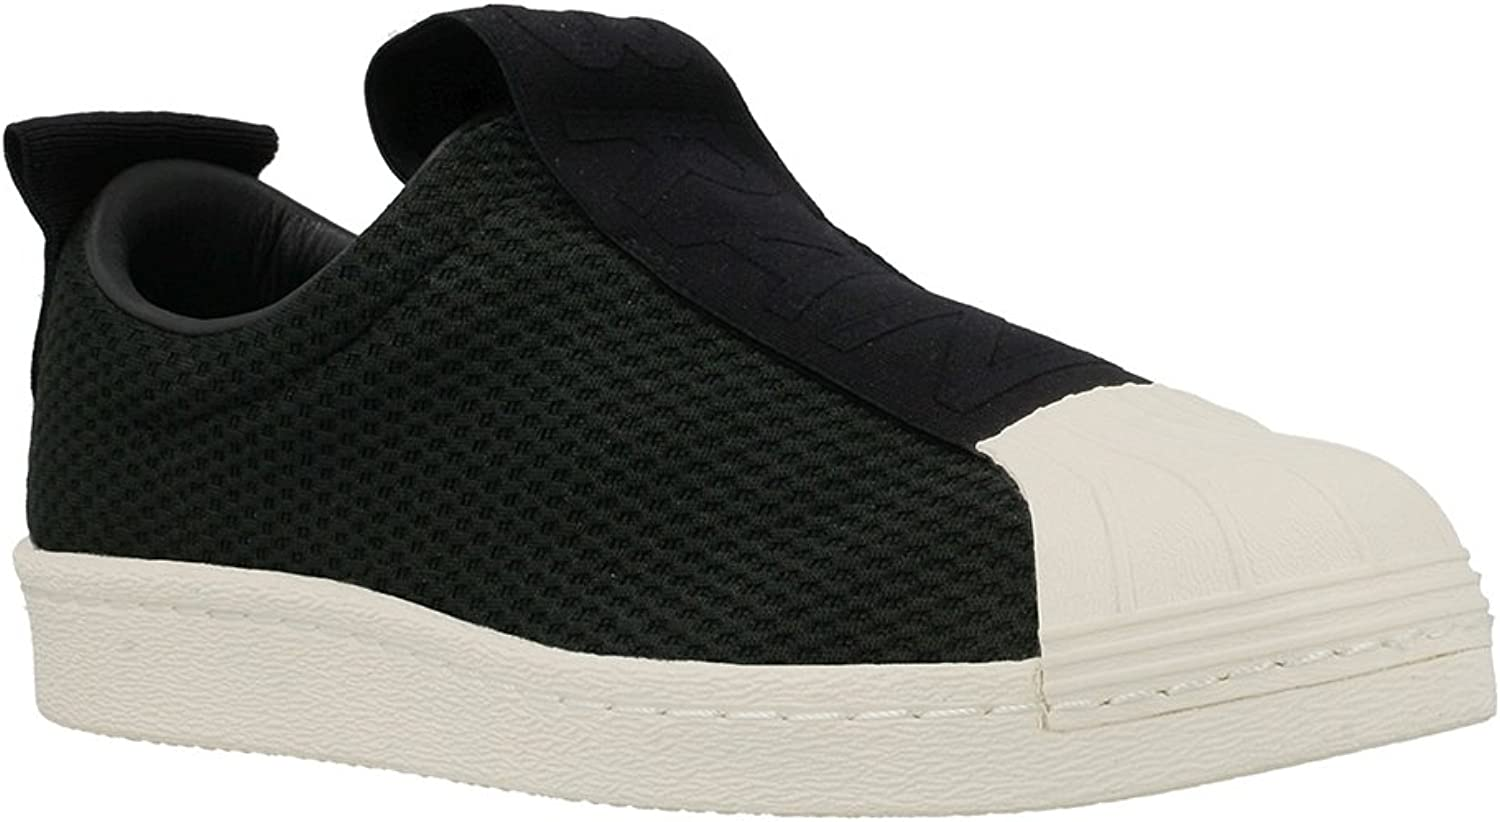 Adidas Womens Superstar Slip-On Low-Top Shell Toe Fashion Sneakers